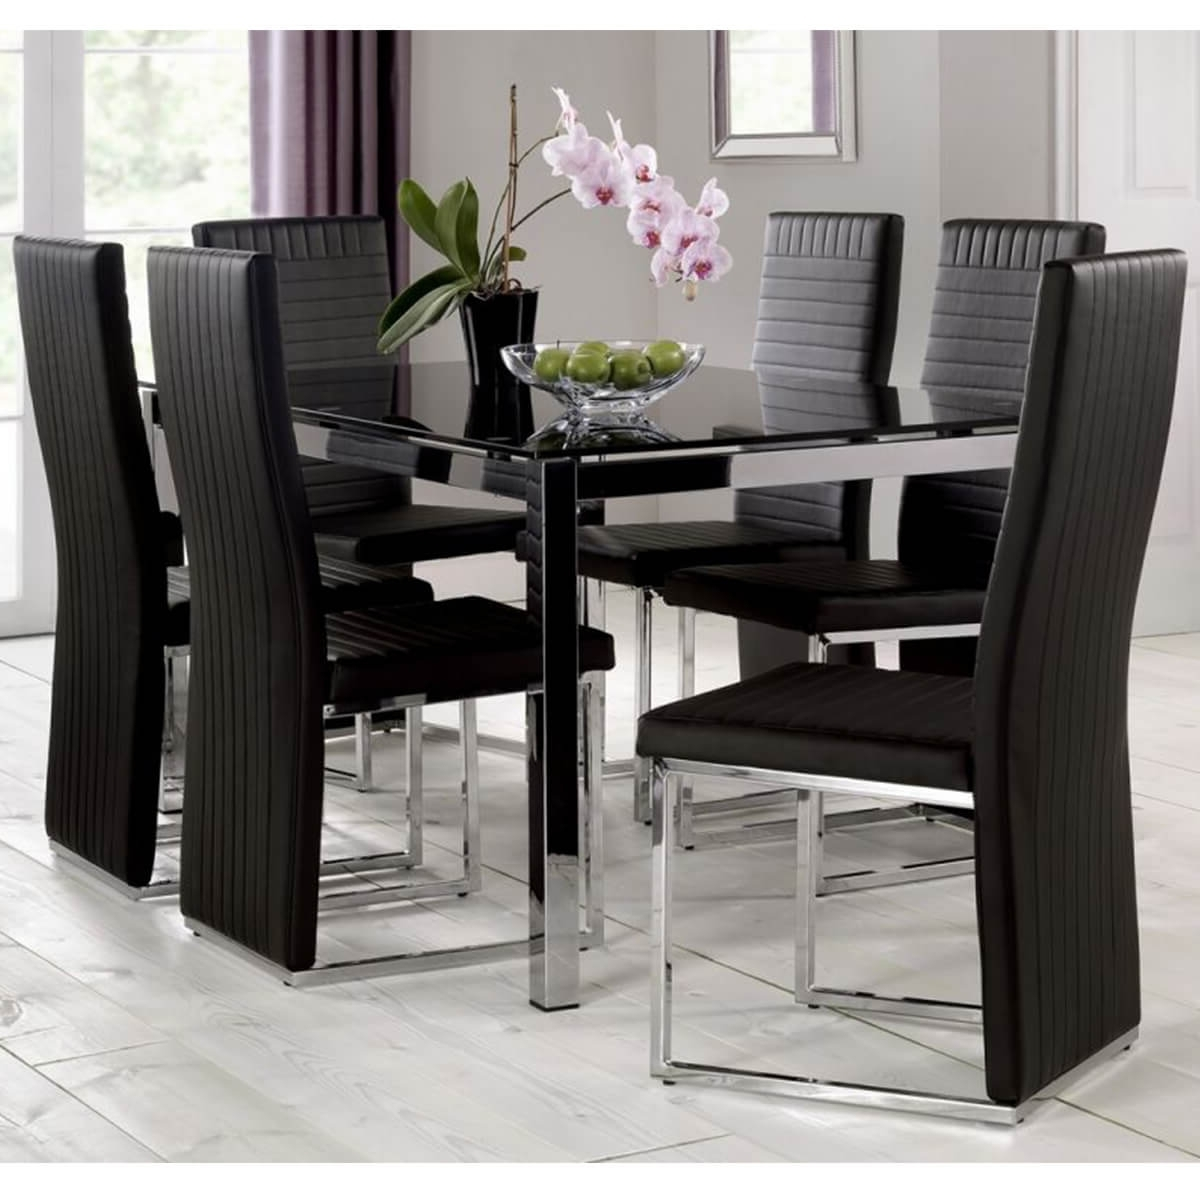 Tempo Black Dining Table With Black Chairs Throughout Newest Glass 6 Seater Dining Tables (View 14 of 25)